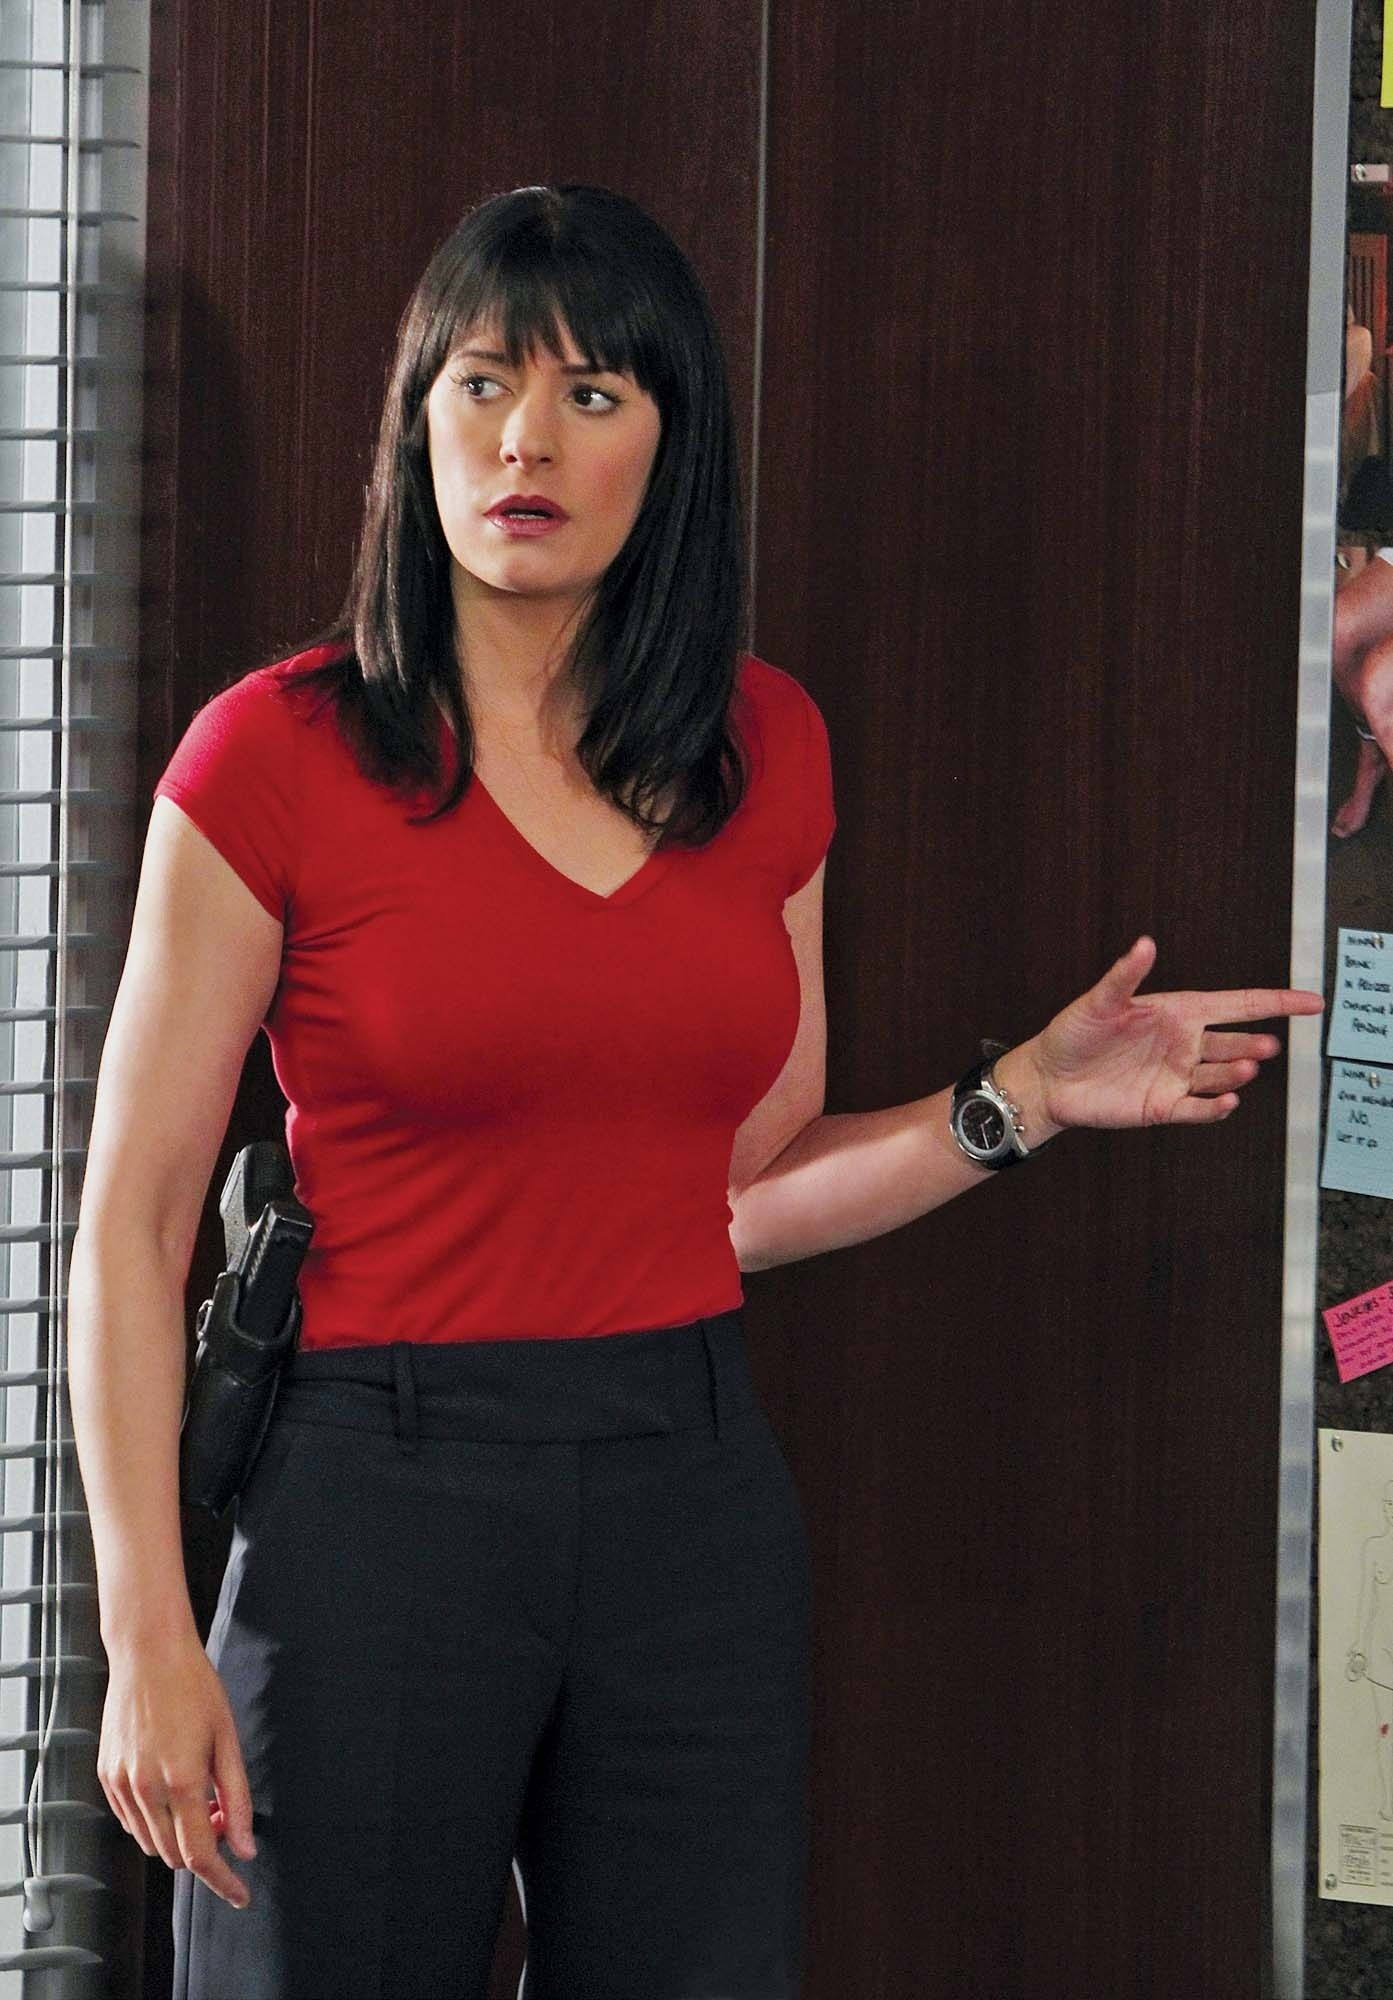 You Paget brewster naked photo the